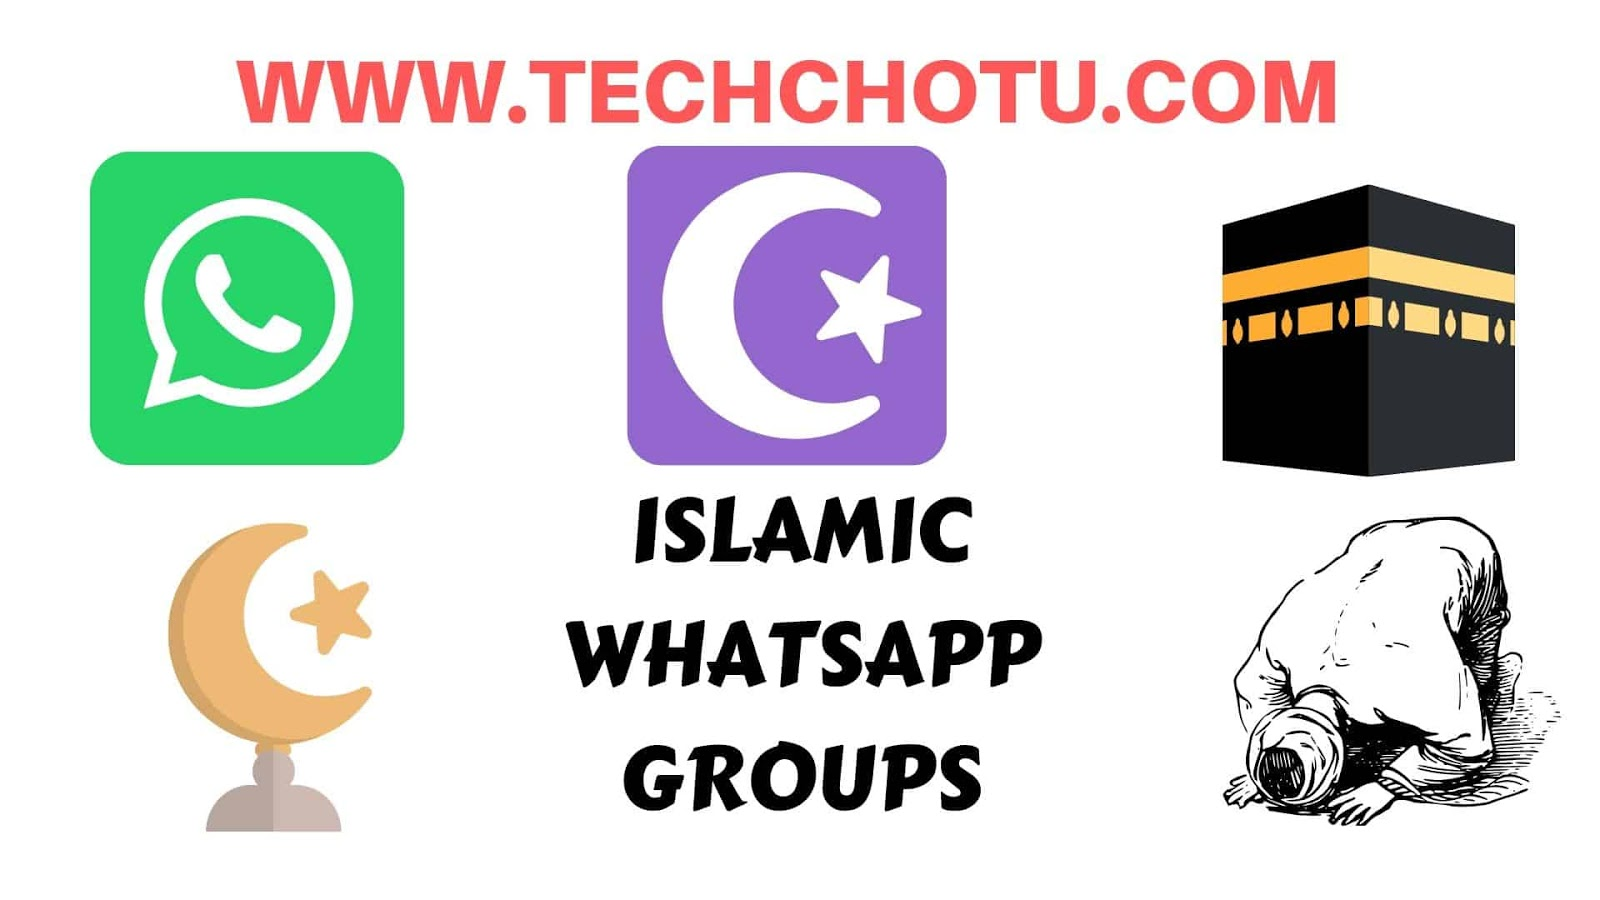 ISLAMIC WHATSAPP GROUP LINKS - TECHCHOTU 2019